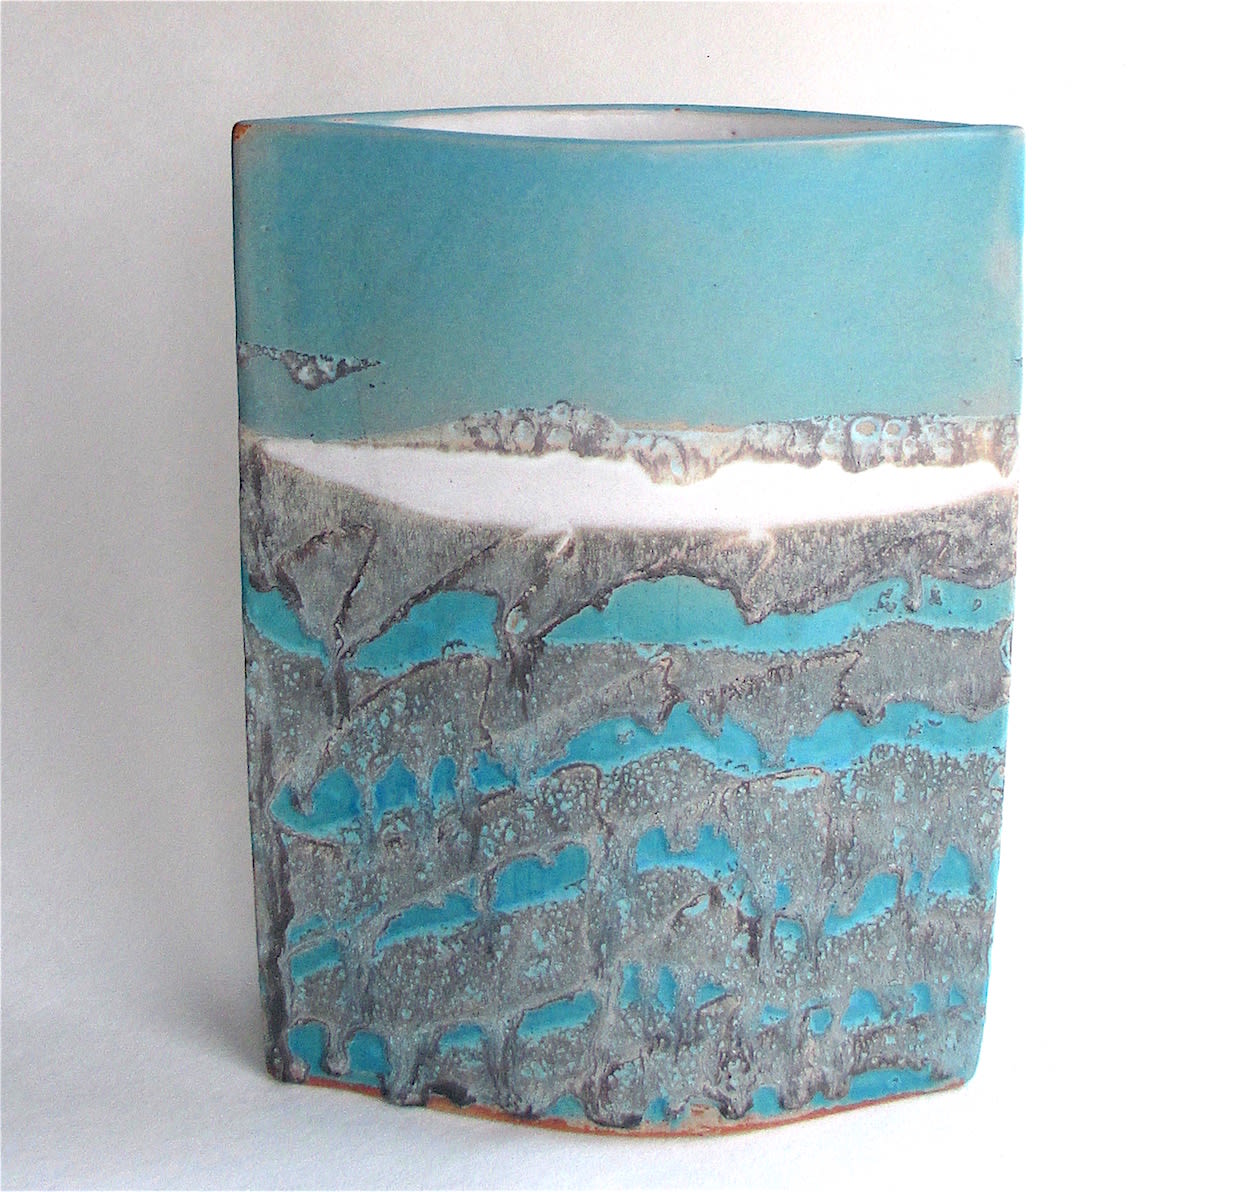 """<span class=""""link fancybox-details-link""""><a href=""""/artists/44-sarah-perry/works/7301-sarah-perry-seascape-ellipse-2020/"""">View Detail Page</a></span><div class=""""artist""""><strong>Sarah Perry</strong></div> b. 1945 <div class=""""title""""><em>Seascape Ellipse</em>, 2020</div> <div class=""""signed_and_dated"""">impressed with the artist's seal mark 'SP'</div> <div class=""""medium"""">stoneware </div> <div class=""""dimensions"""">h 29 x w 18 cm</div><div class=""""price"""">£350.00</div><div class=""""copyright_line"""">Ownart: £33 x 10 Months, 0% APR</div>"""